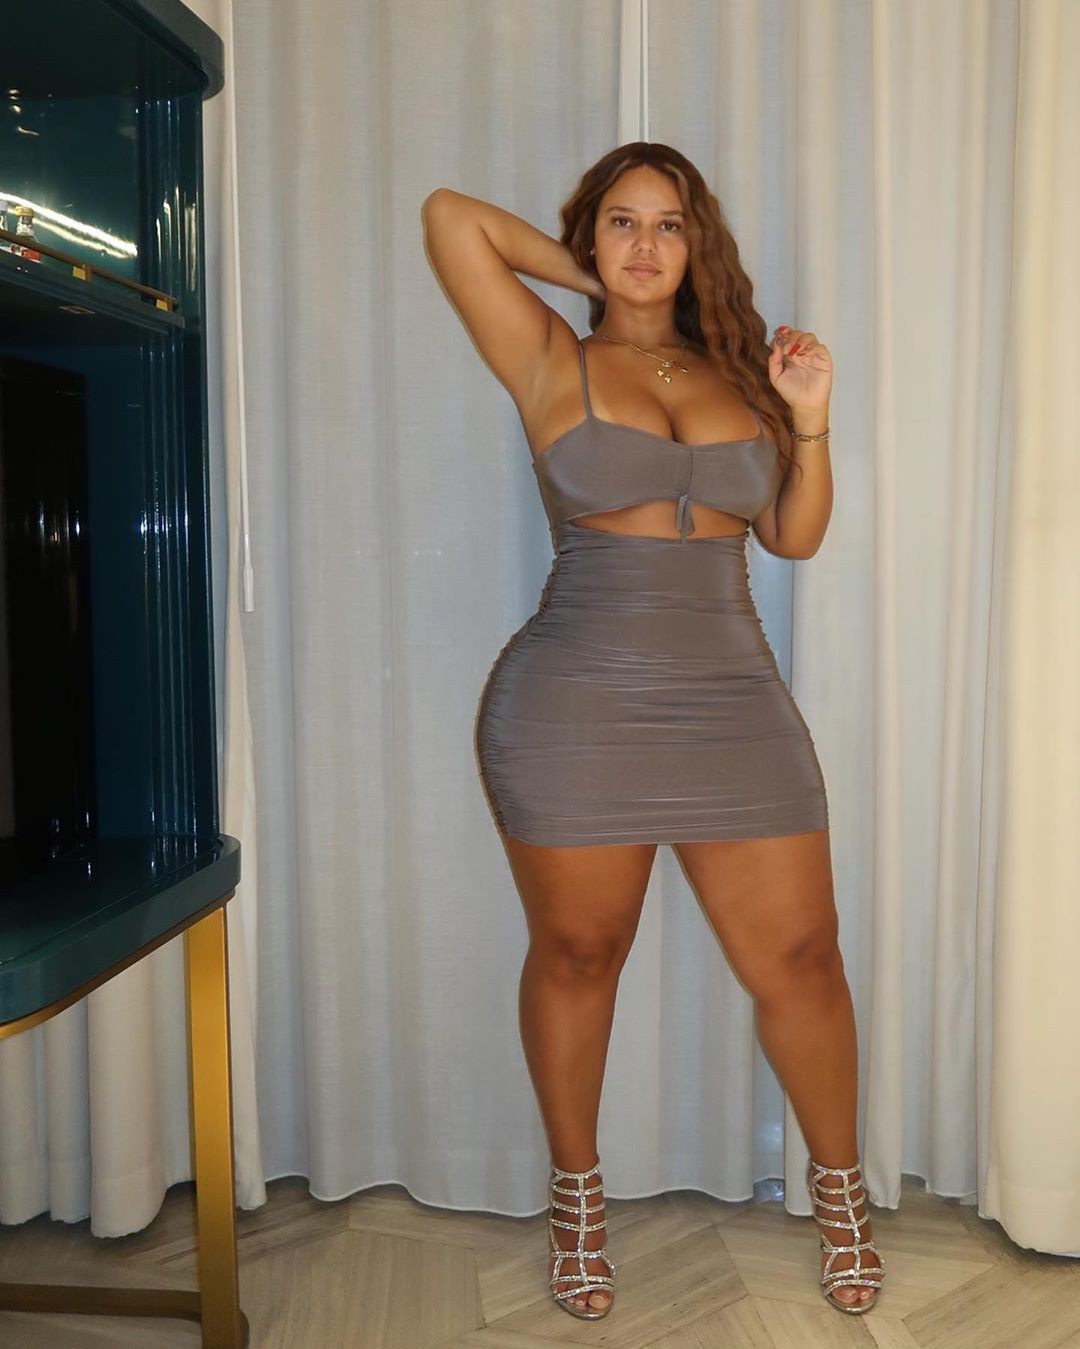 black dresses ideas with dress, female thighs, sexy legs